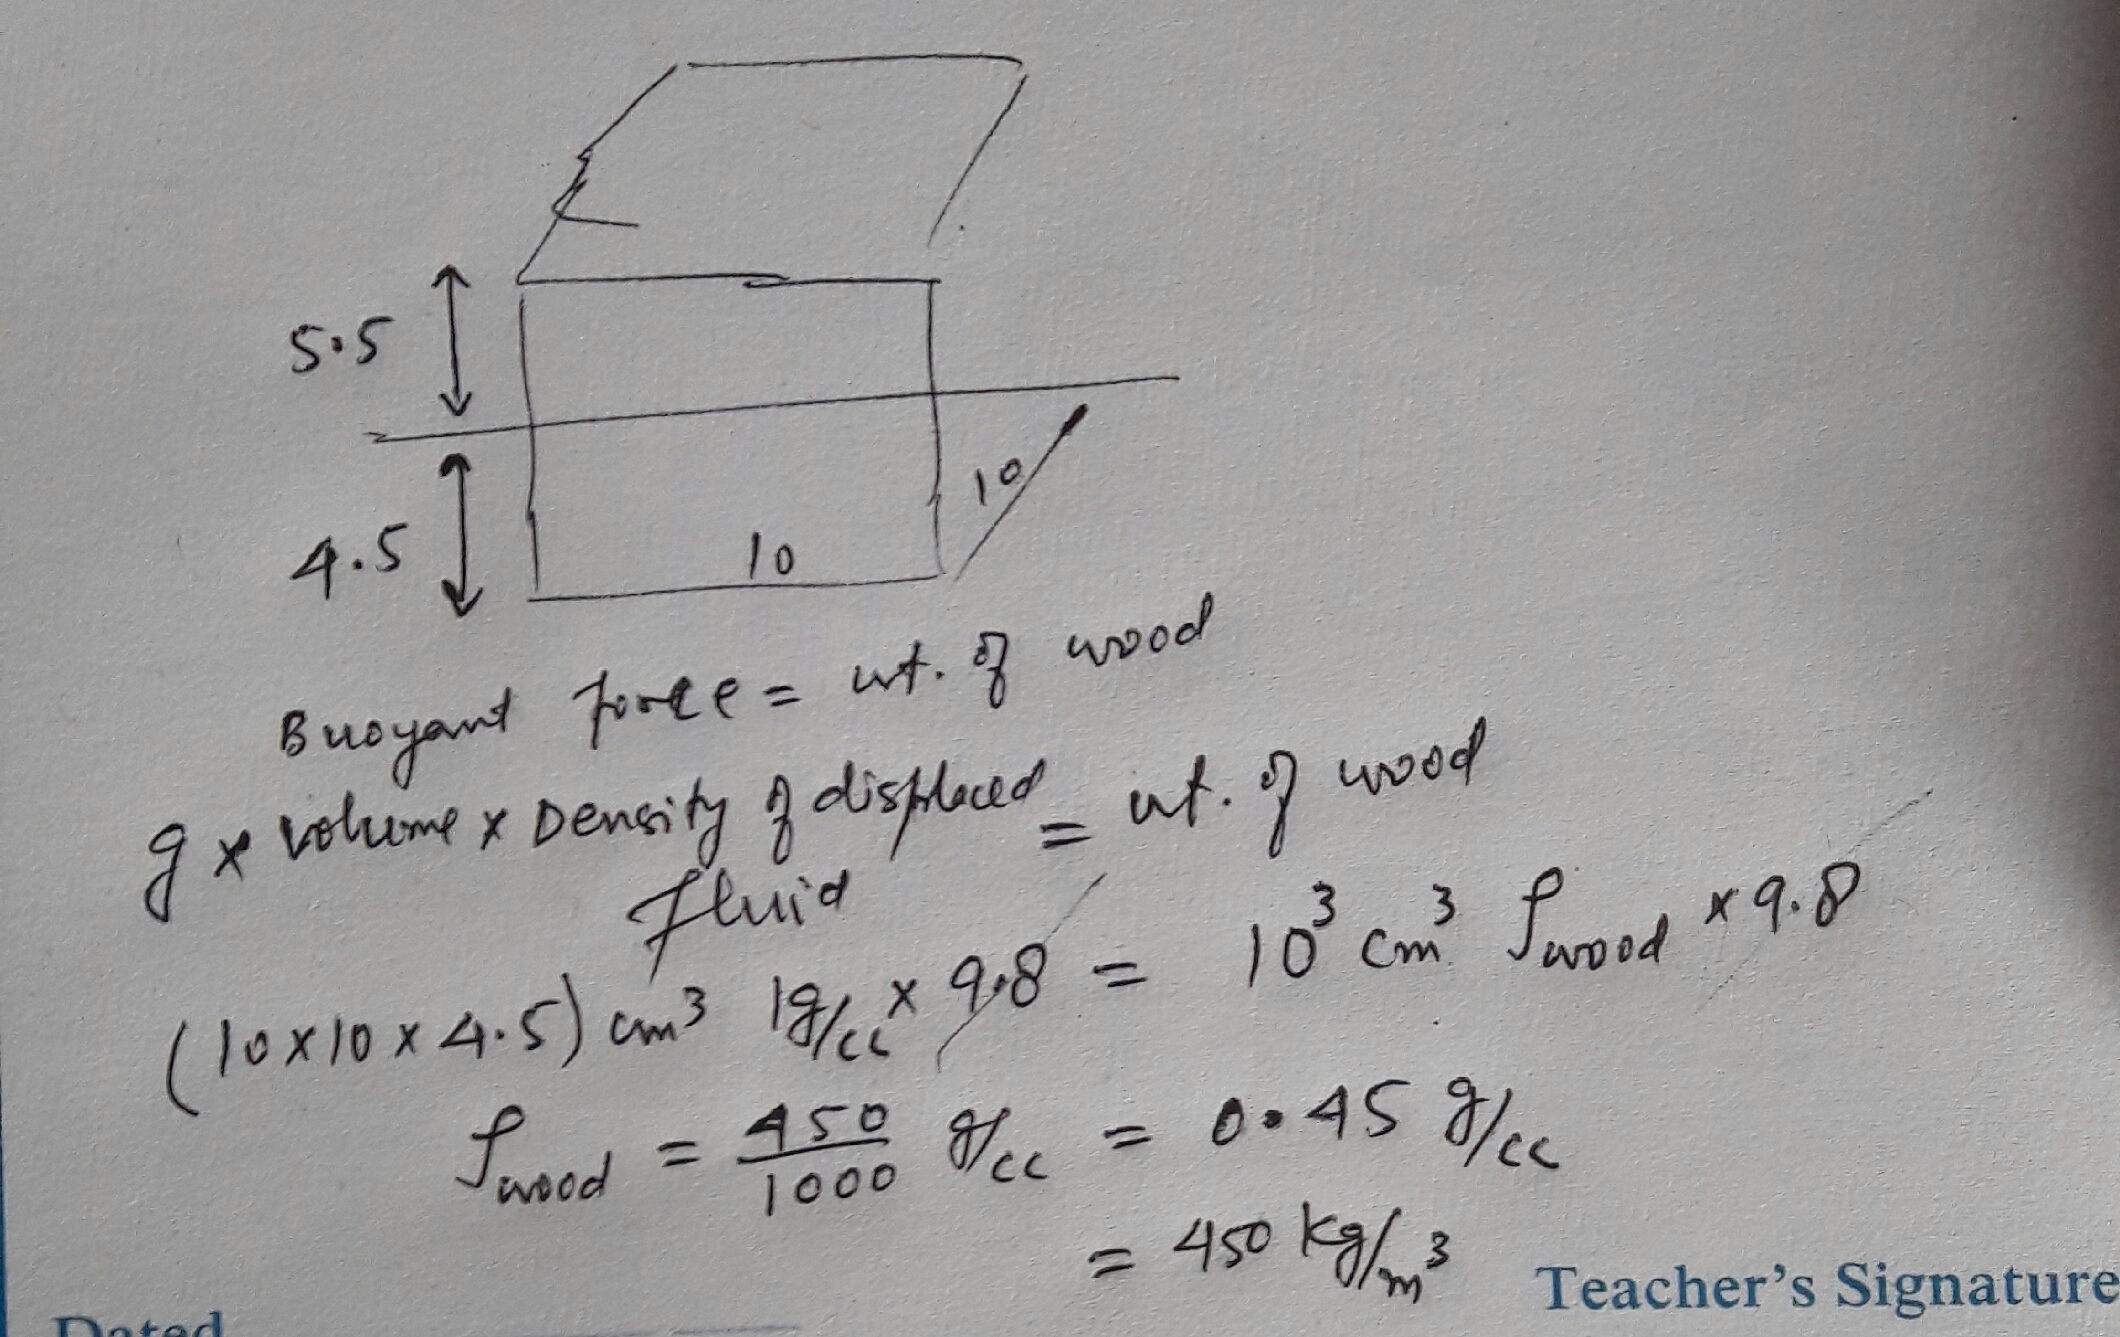 A cube of wood of side 10cm floats in water with 4 5cm of